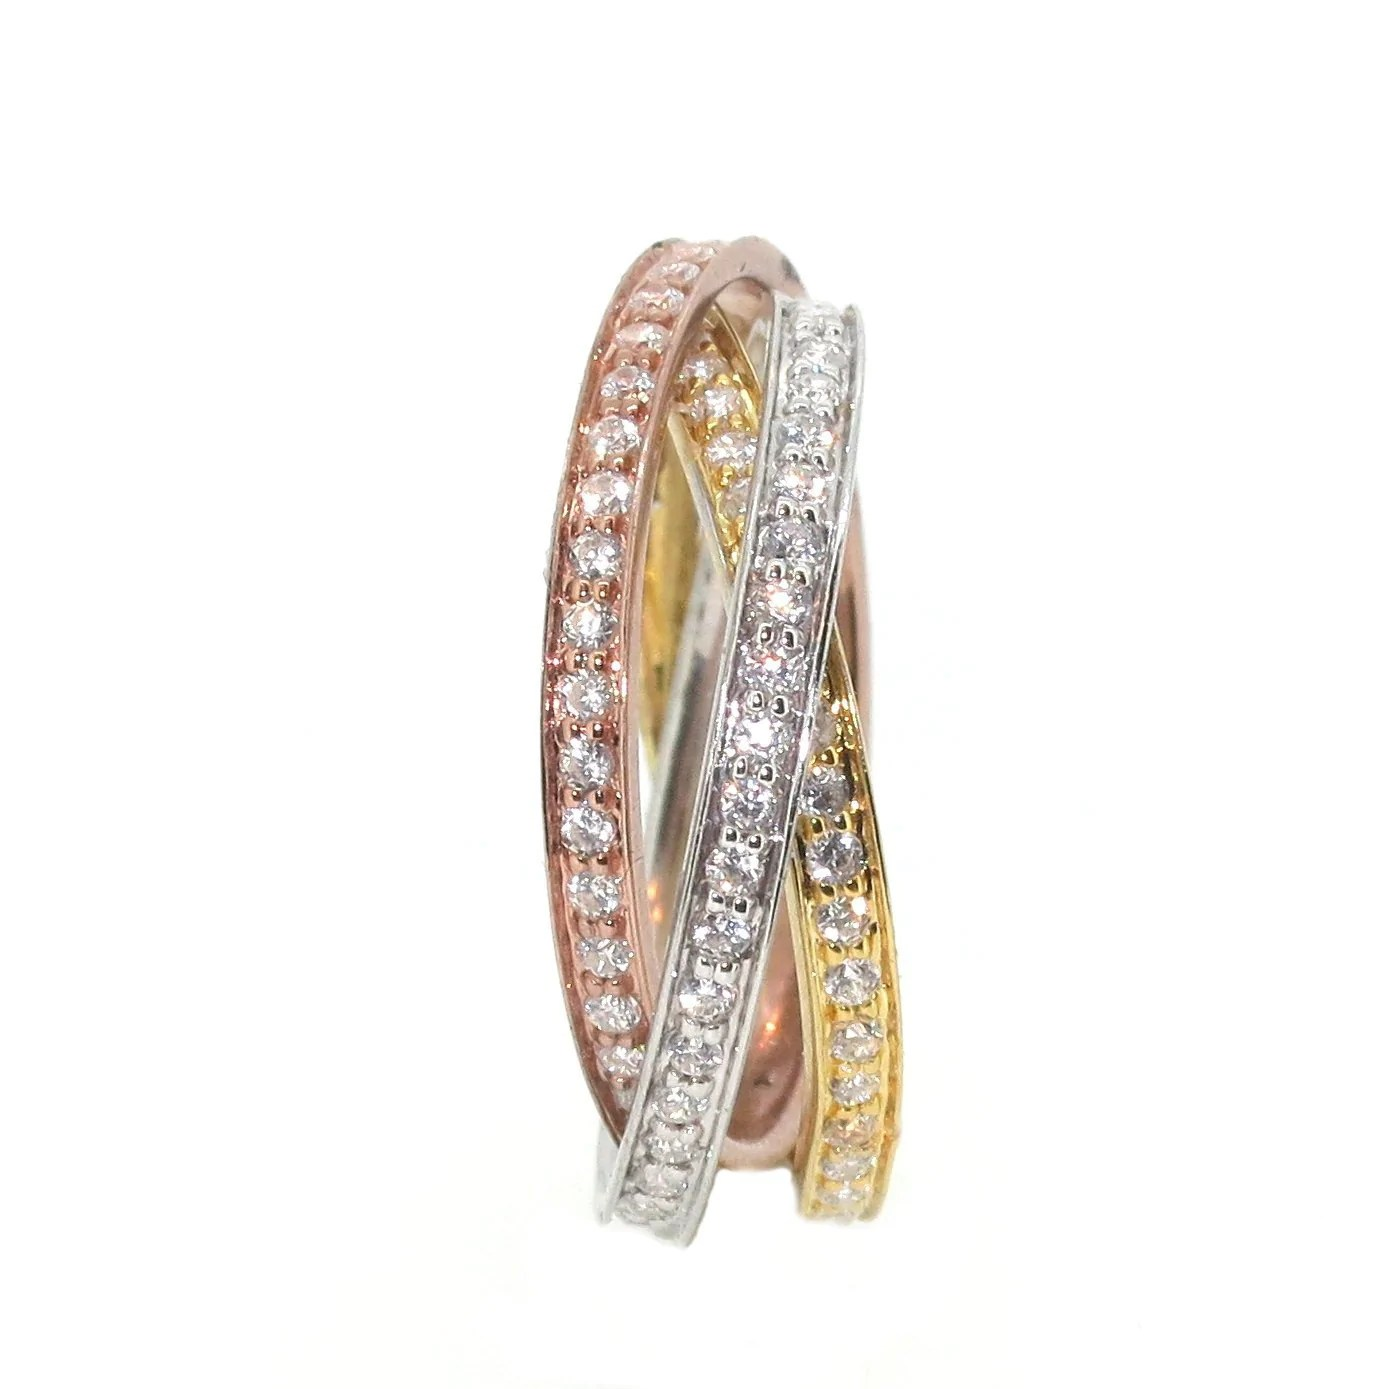 triple tone triple band intertwined eternity ring diamonds on rose gold yellow gold white gold wedding anniversary ring cocktail ring triple band wedding ring Triple Tone Triple Wedding Band Intertwined Eternity Ring Diamonds on Rose Gold Yellow